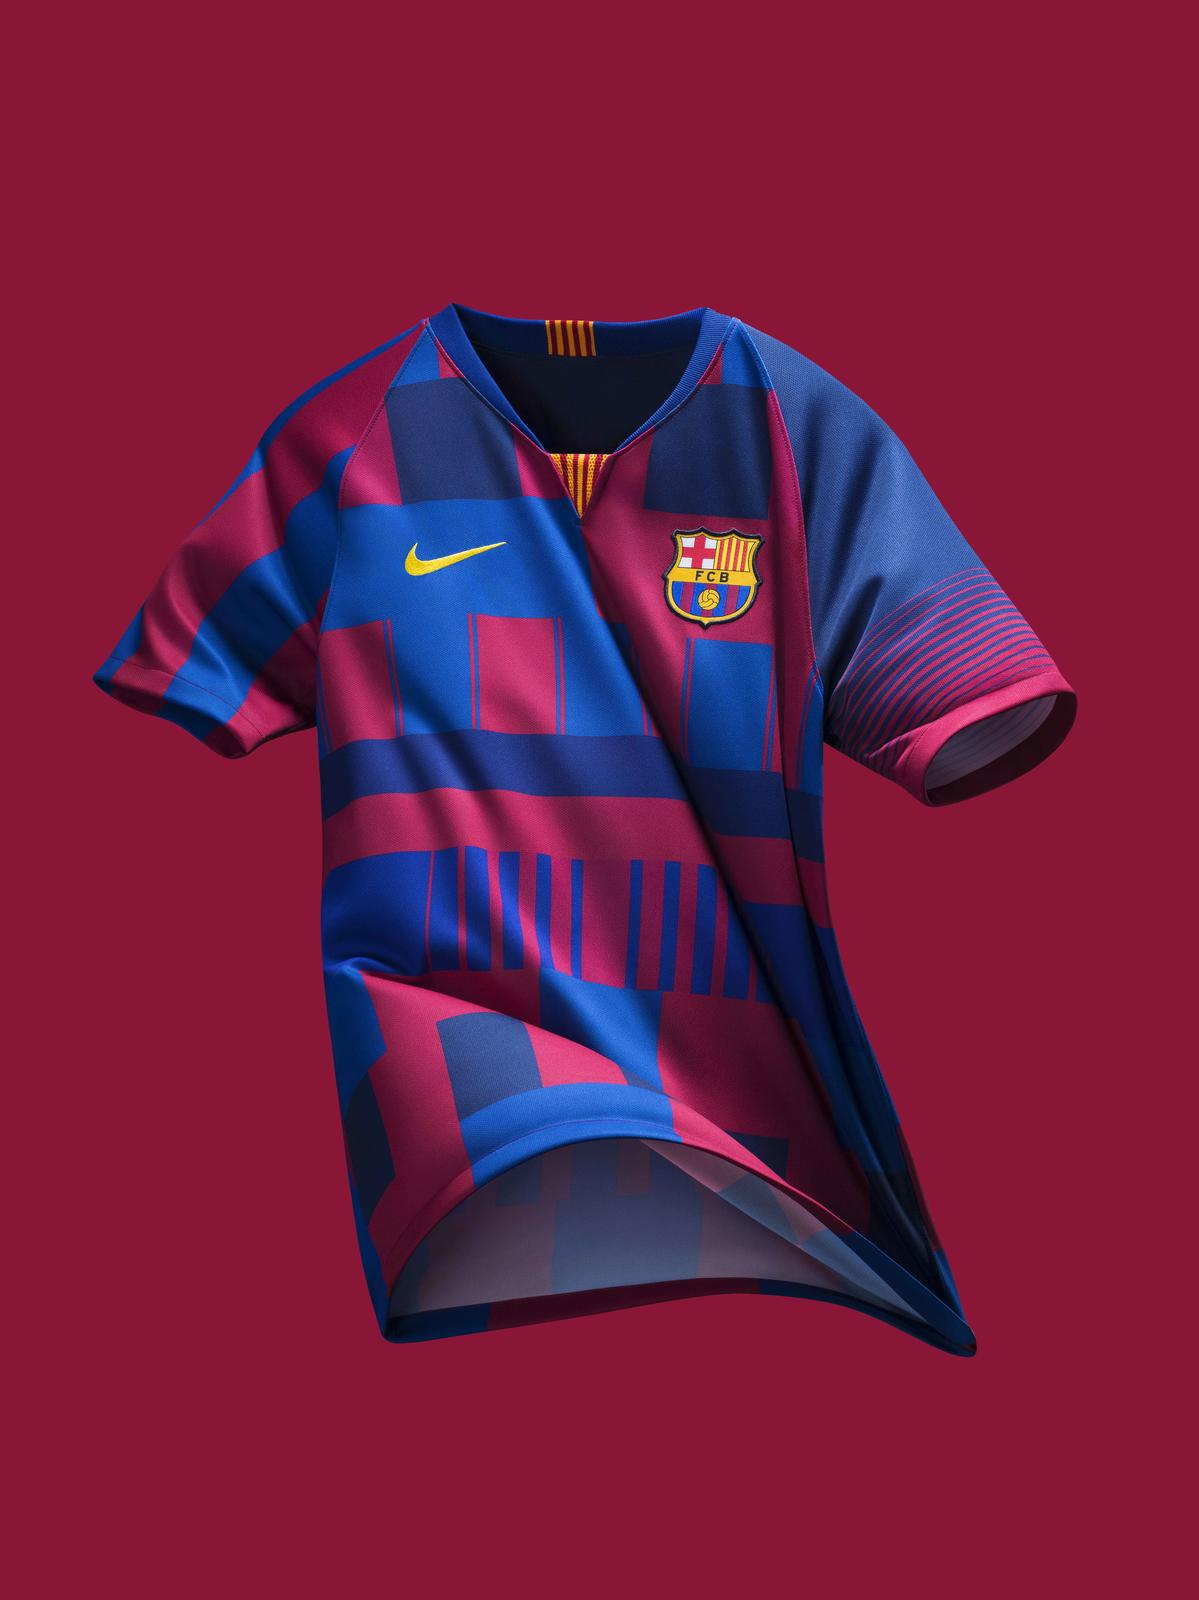 5ddefb3d374 FC Barcelona What The 20th Anniversary Jersey - Nike News